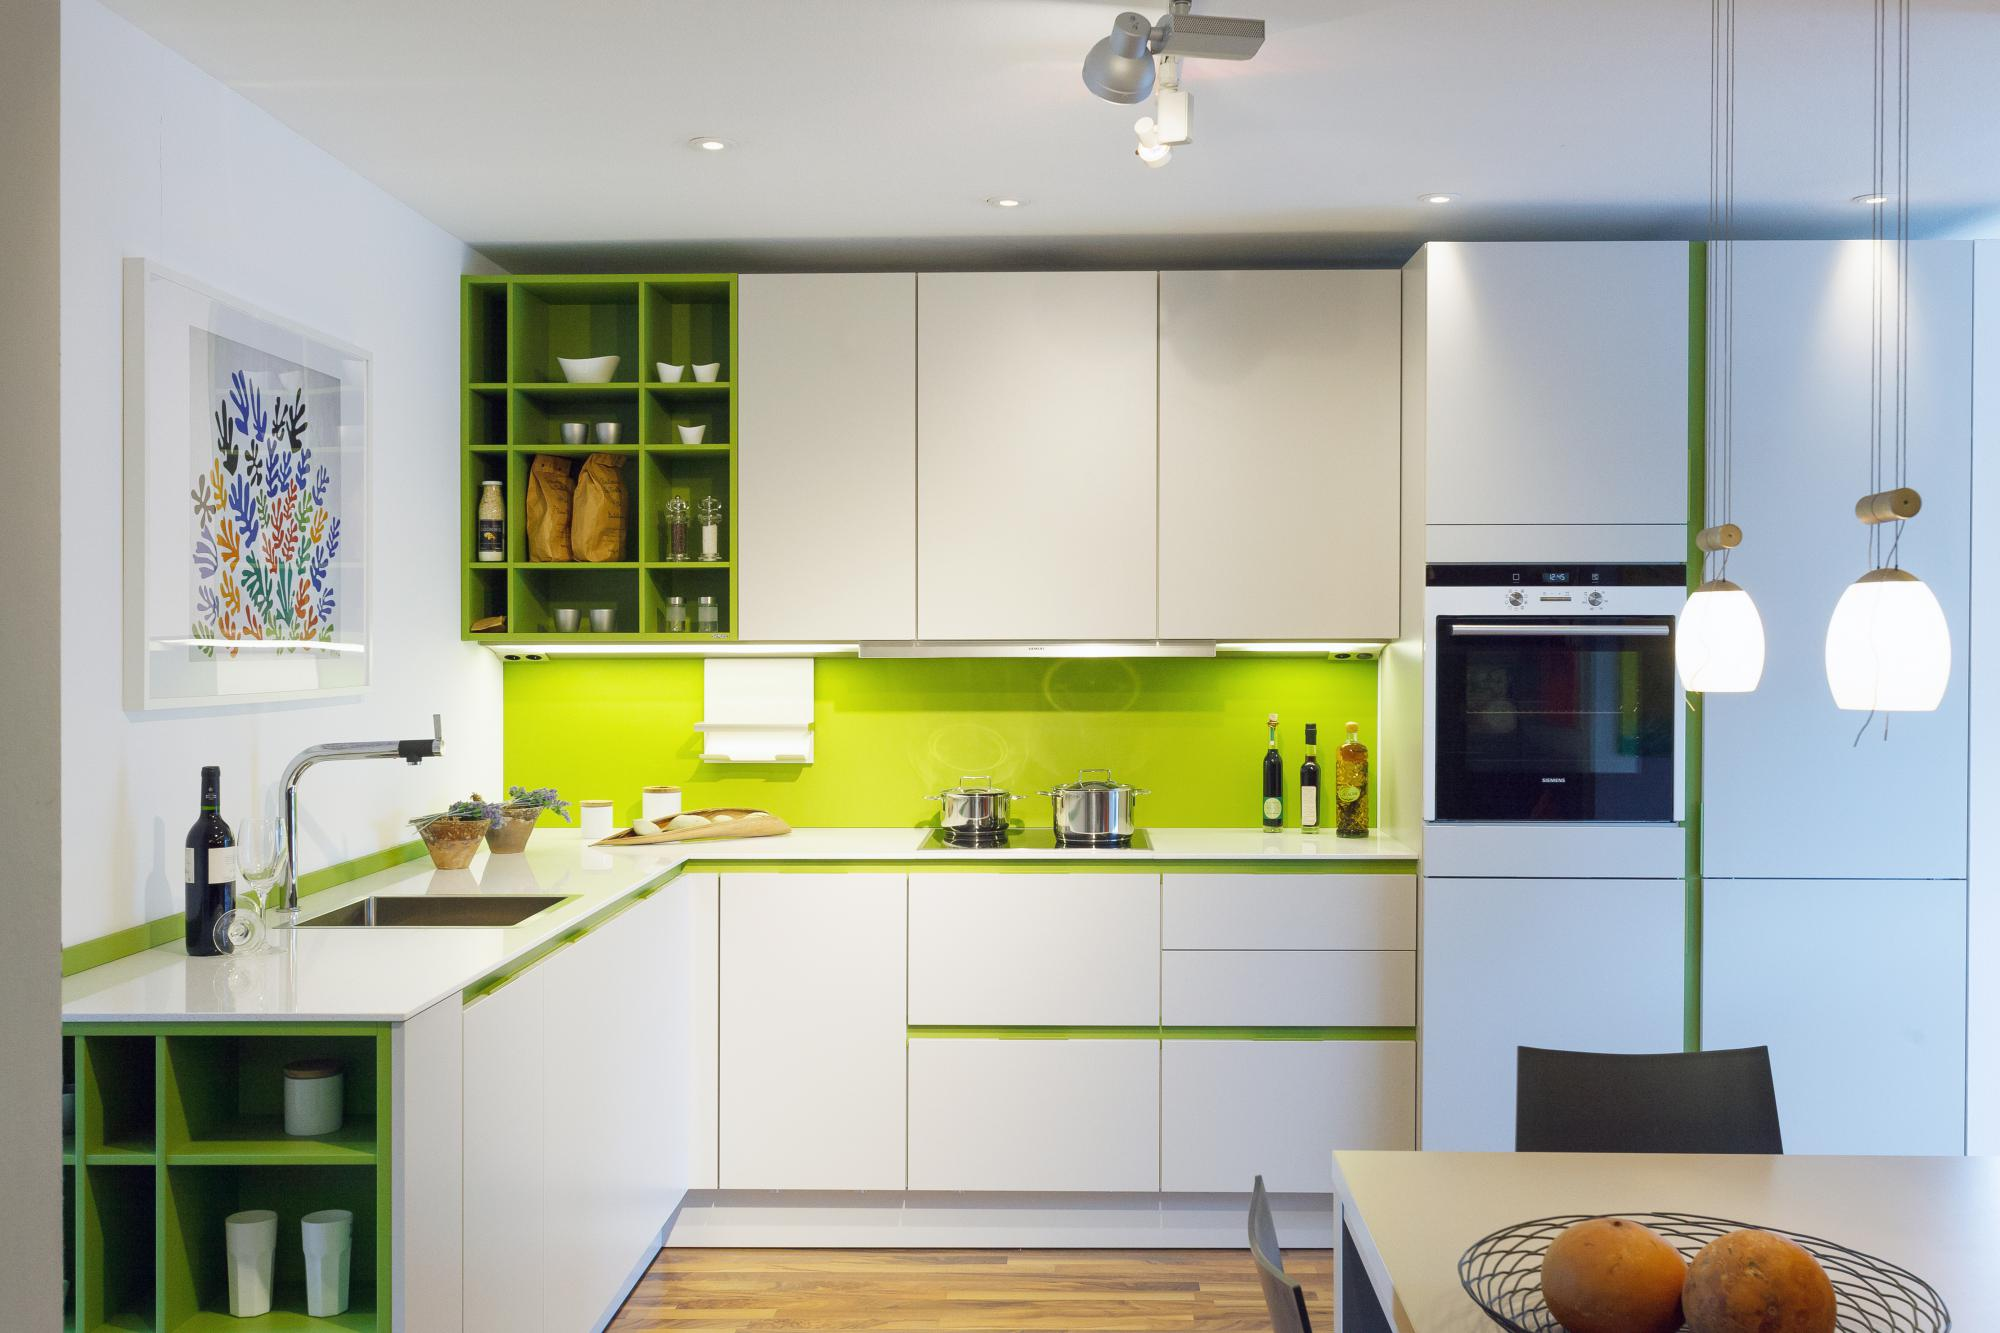 Contemporary kitchen design kitchens with a pop of color for Pop design for kitchen